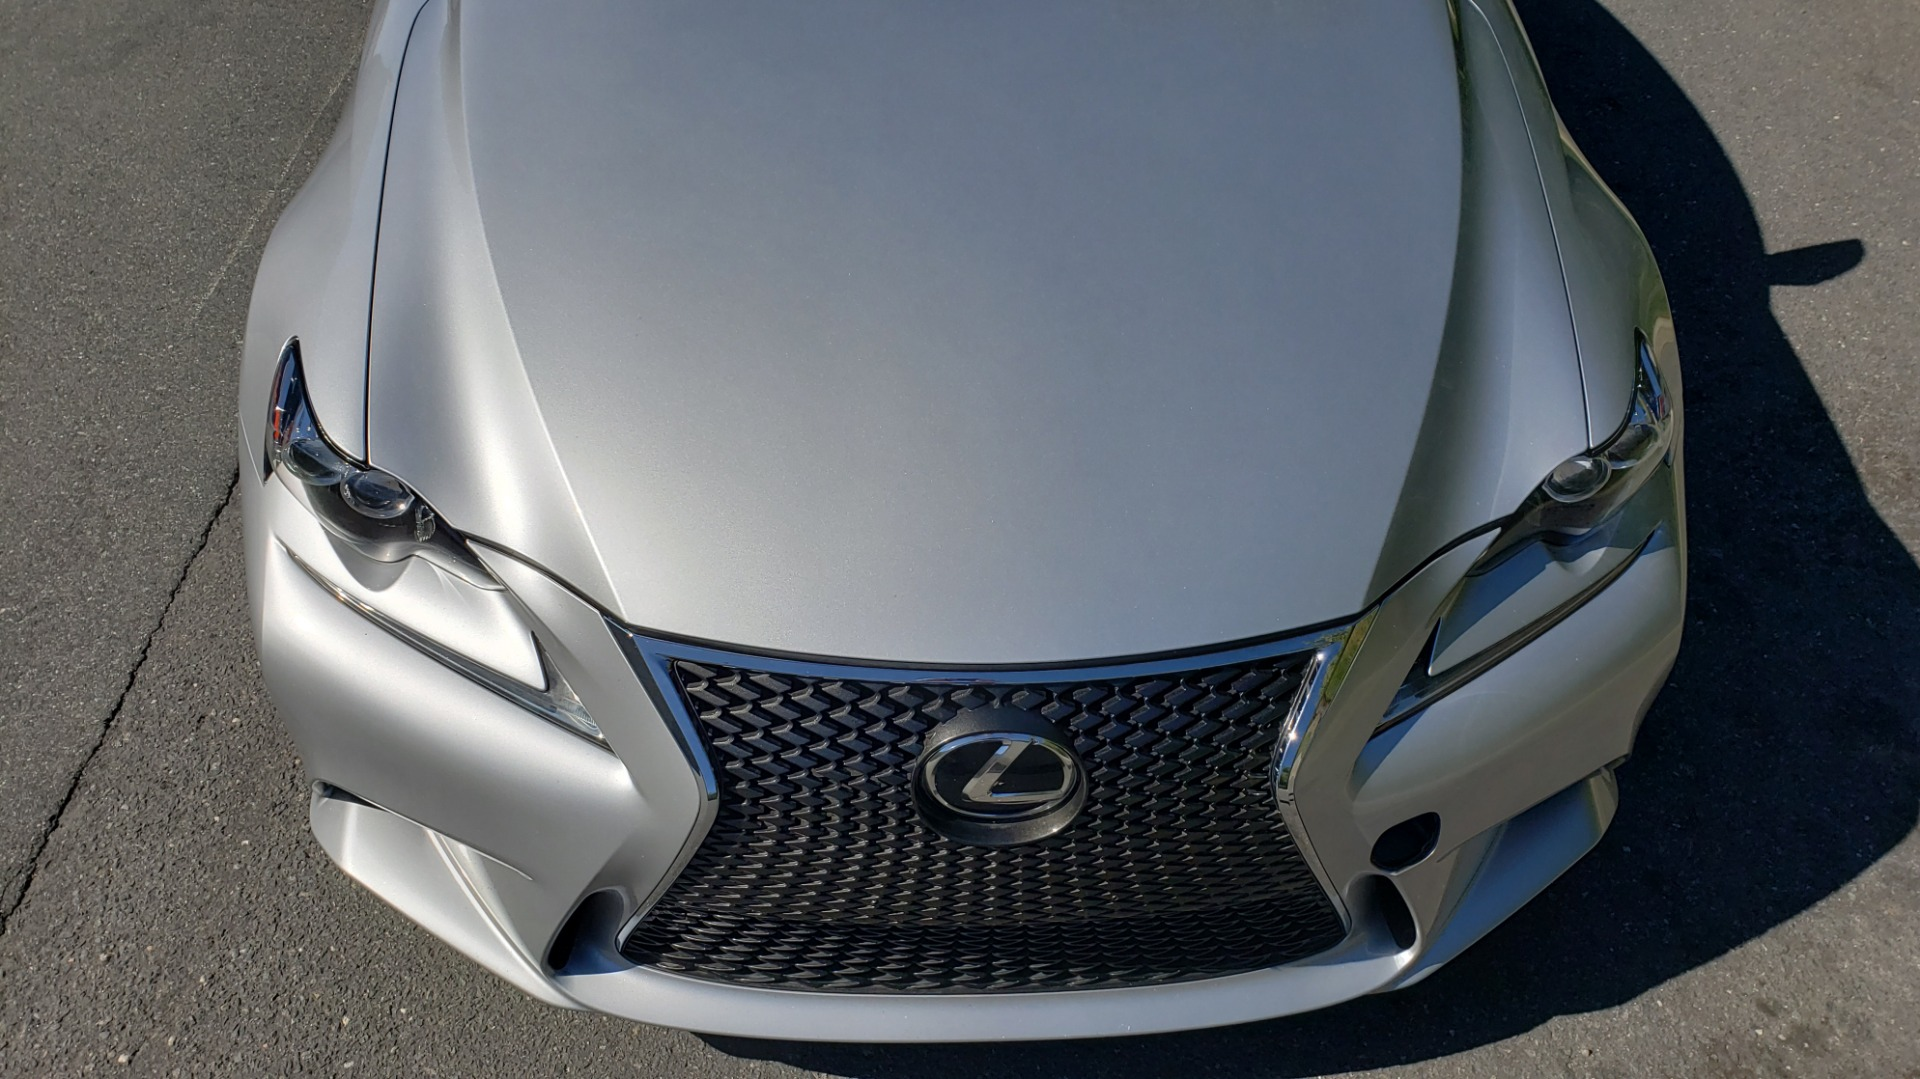 Used 2015 Lexus IS 350 F-SPORT / AWD / NAV / SUNROOF / BSM / REARVIEW for sale Sold at Formula Imports in Charlotte NC 28227 14